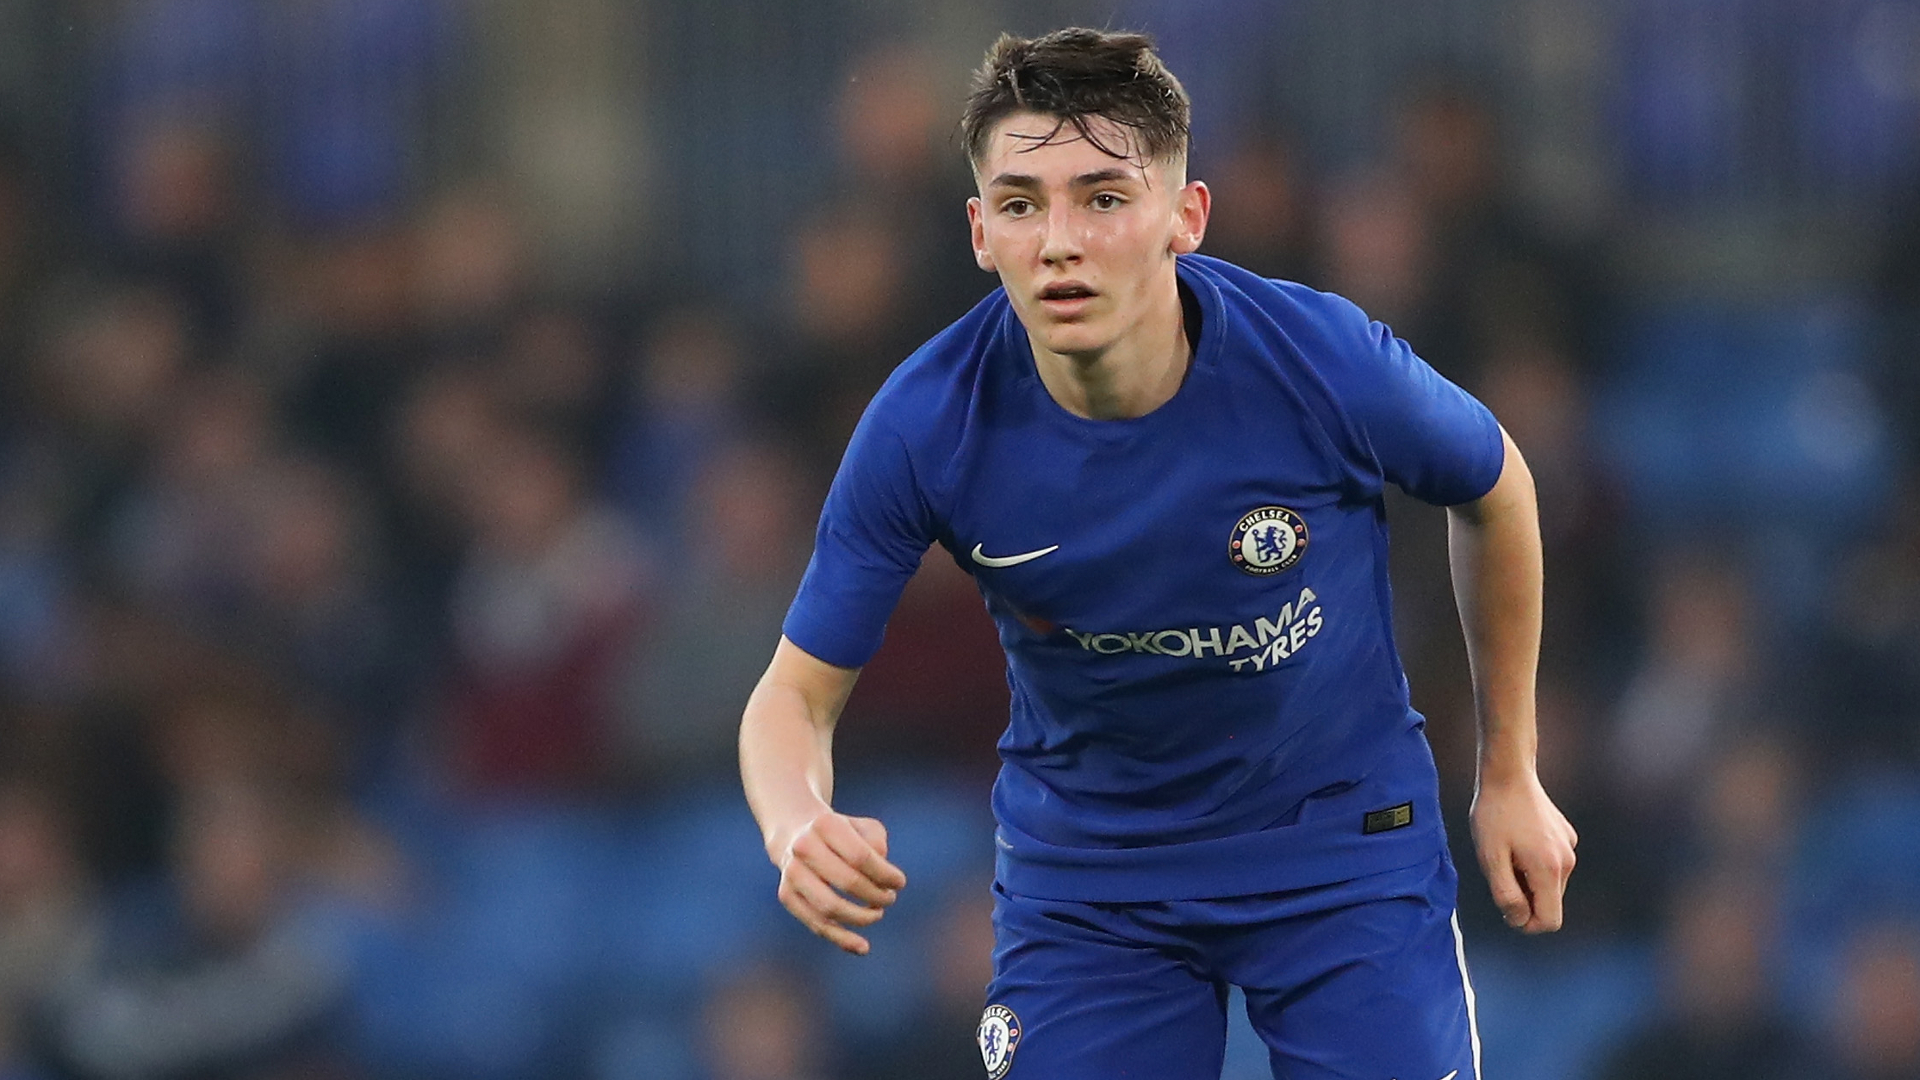 meet billy gilmour the latest chelsea academy star making a name